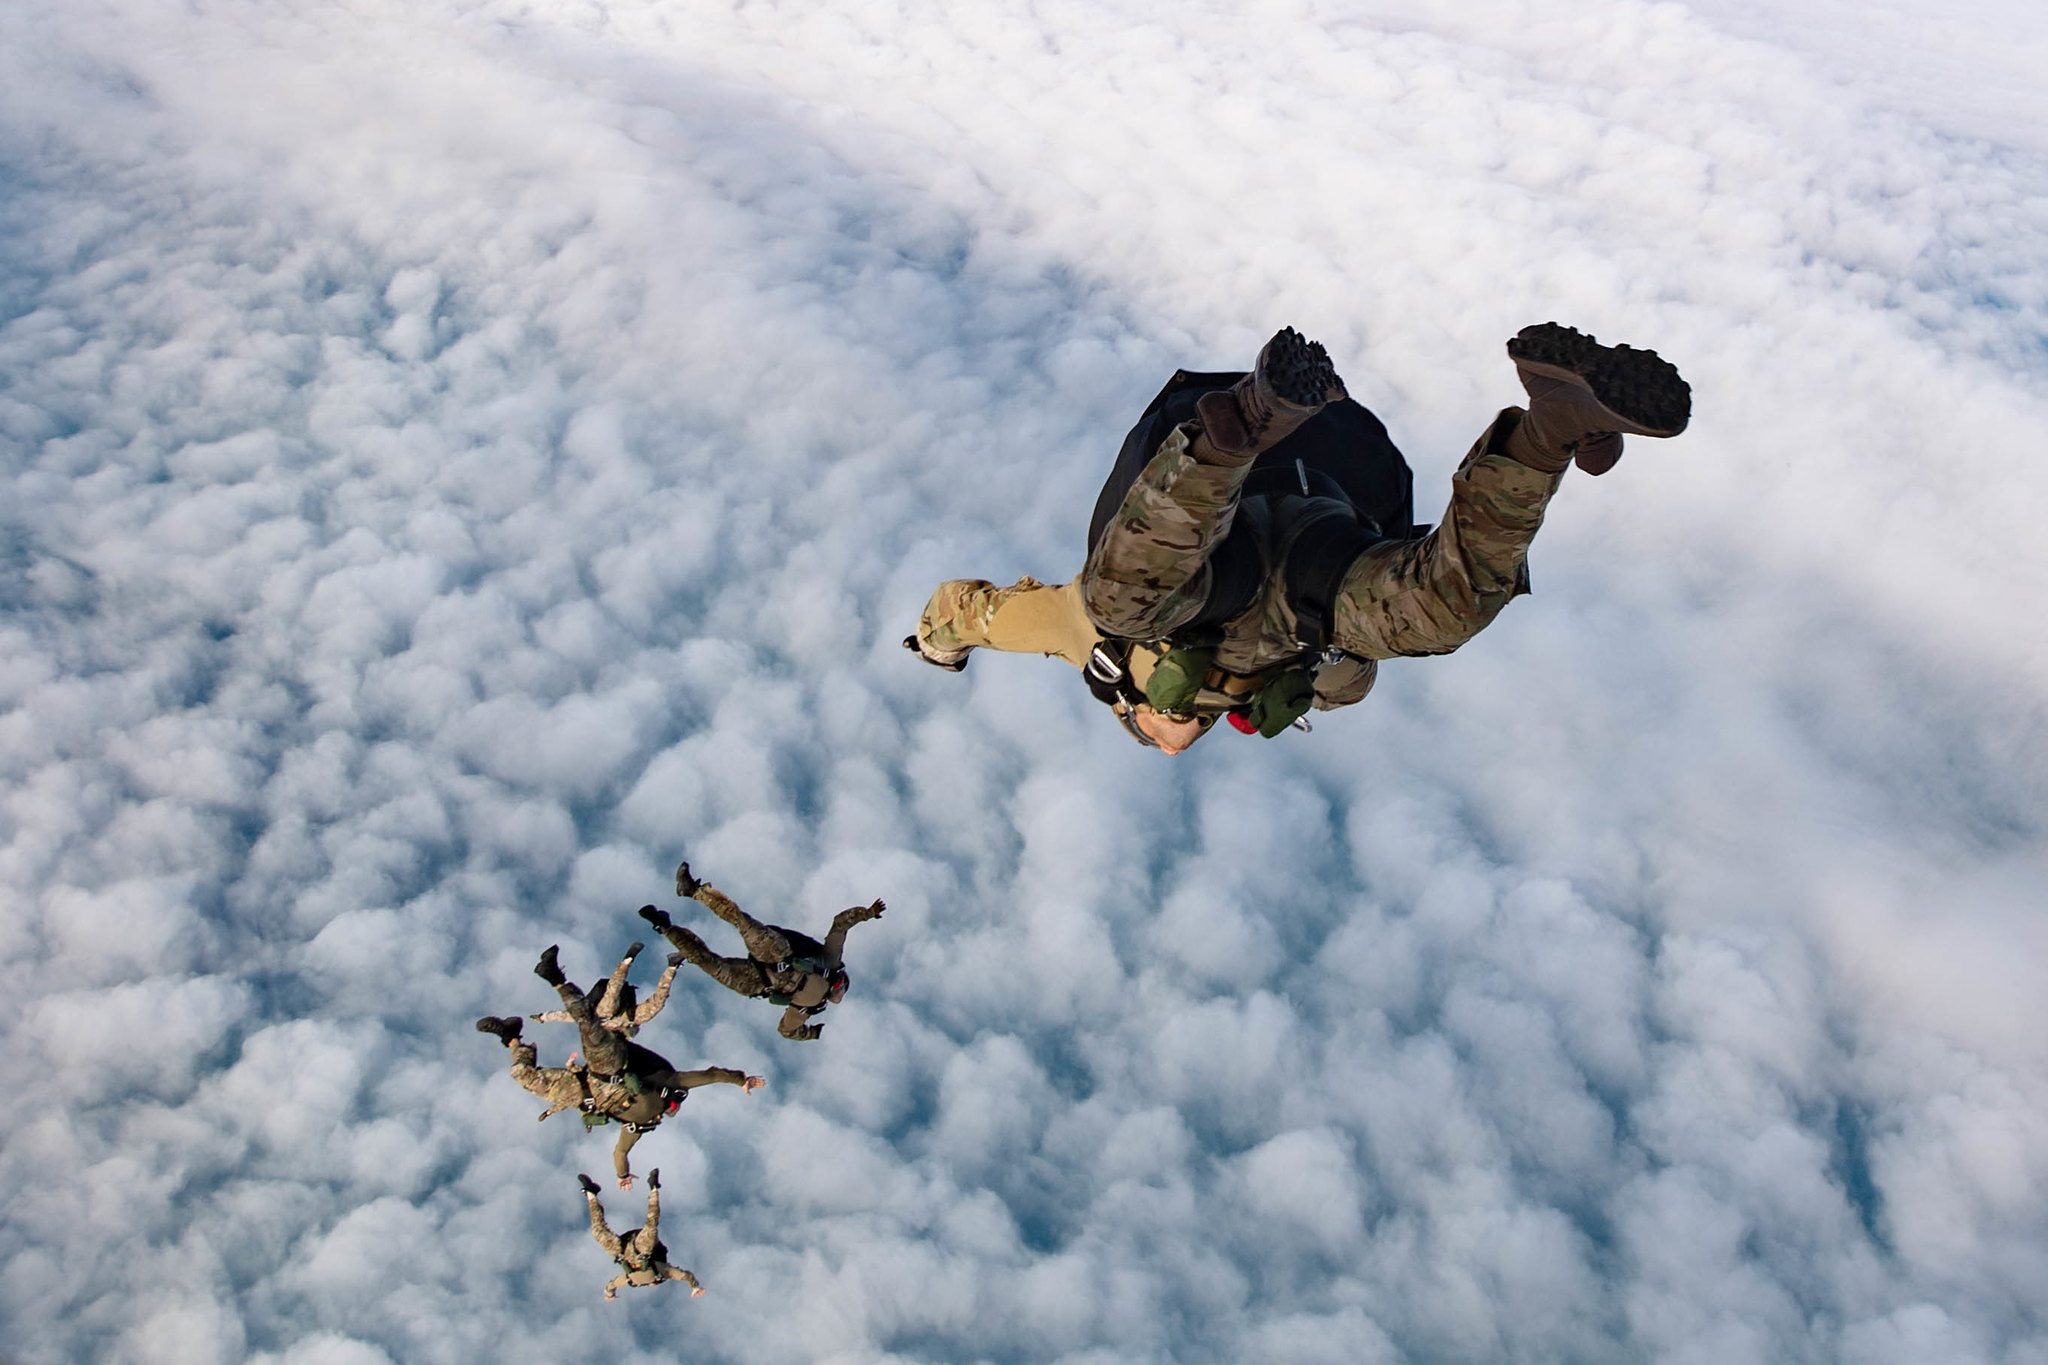 Explosive ordnance disposal technicians conduct unstable exit free fall jumps as part of flight operations with the Spanish navy on Feb. 13, 2020, in Rota, Spain. (Mass Communication Specialist 3rd Class Katie Cox/Navy)